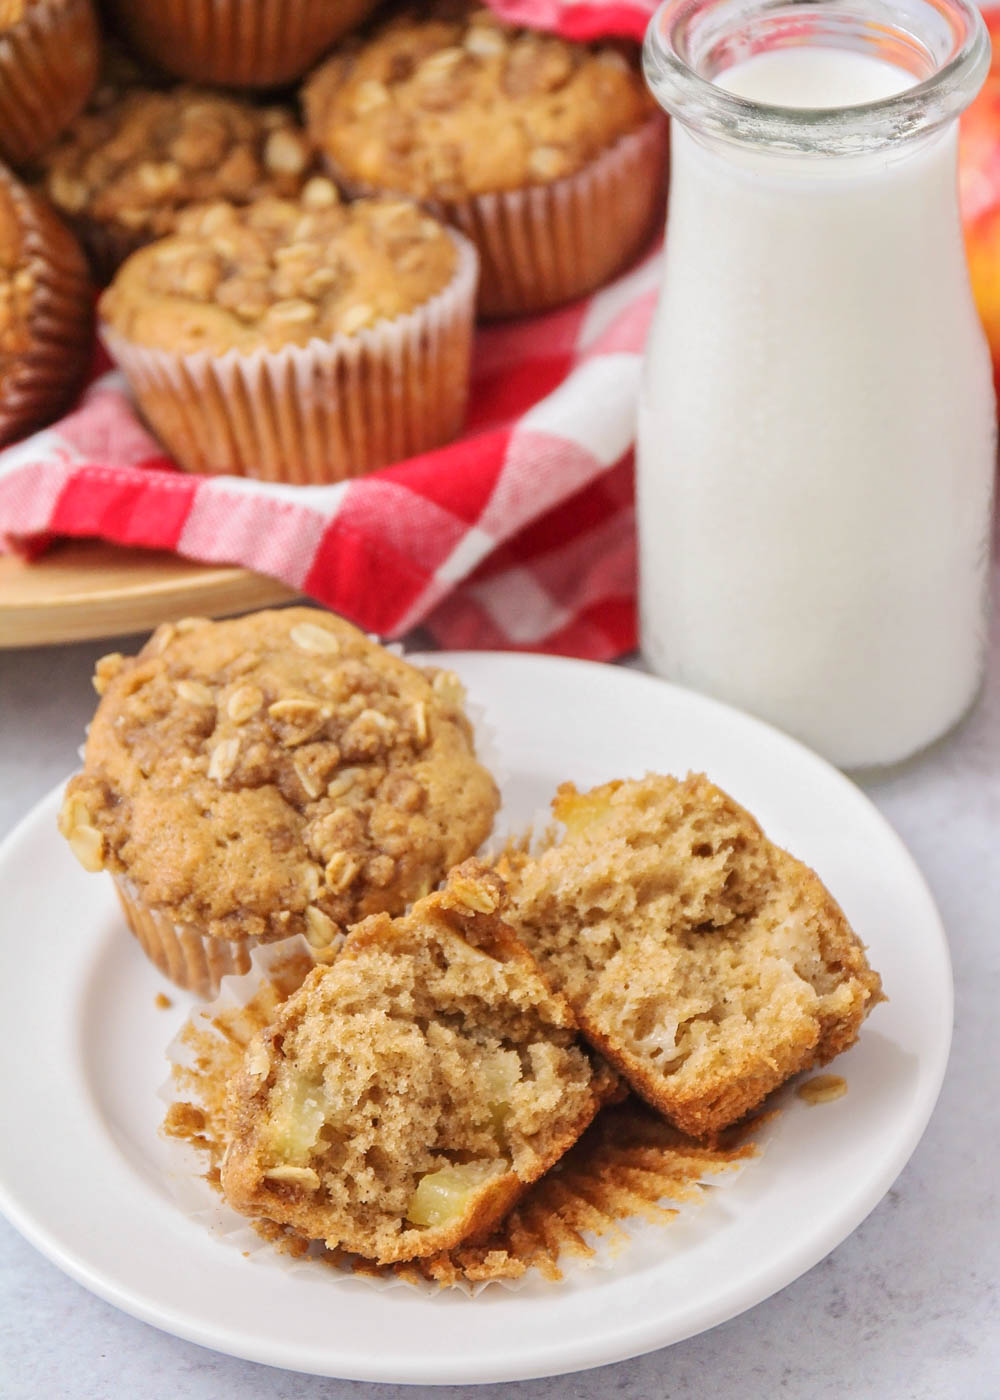 Closeup of apple muffins on a white plate